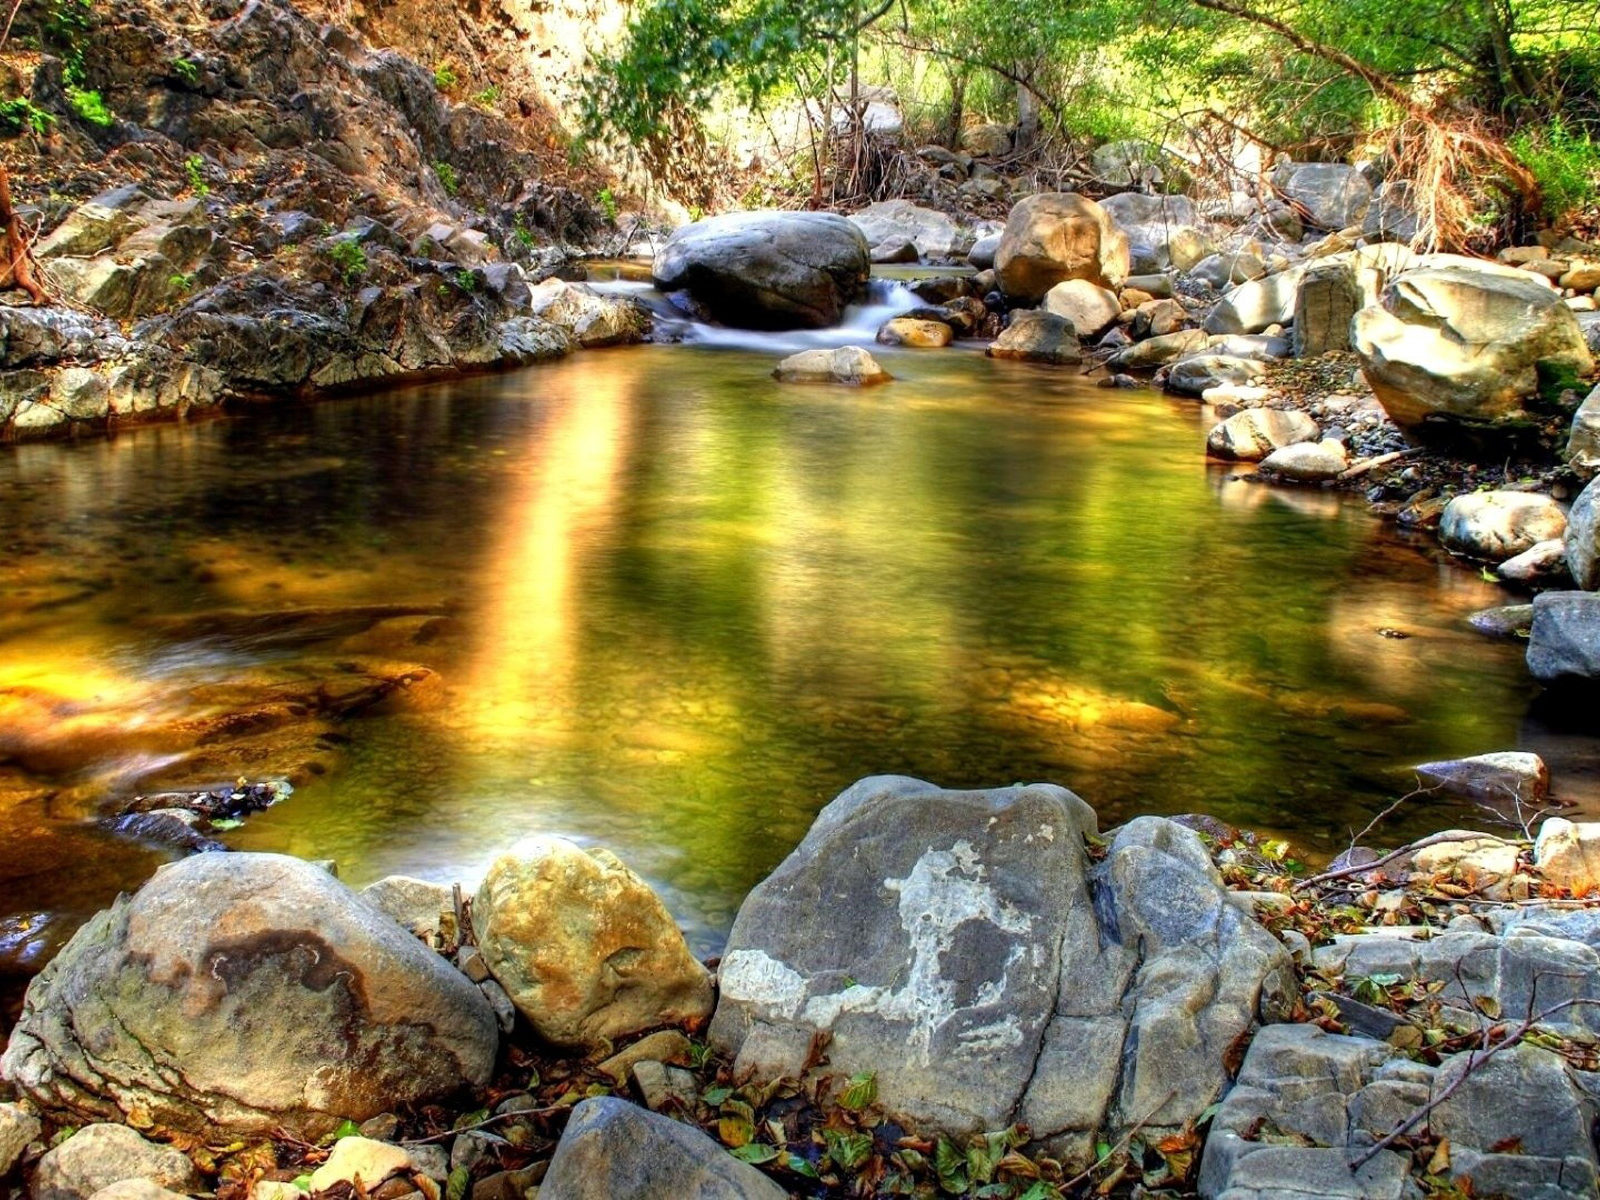 Fall Wallpaper Lake Mountain Stream Rocks Wallpaper 92641 Wallpapers13 Com